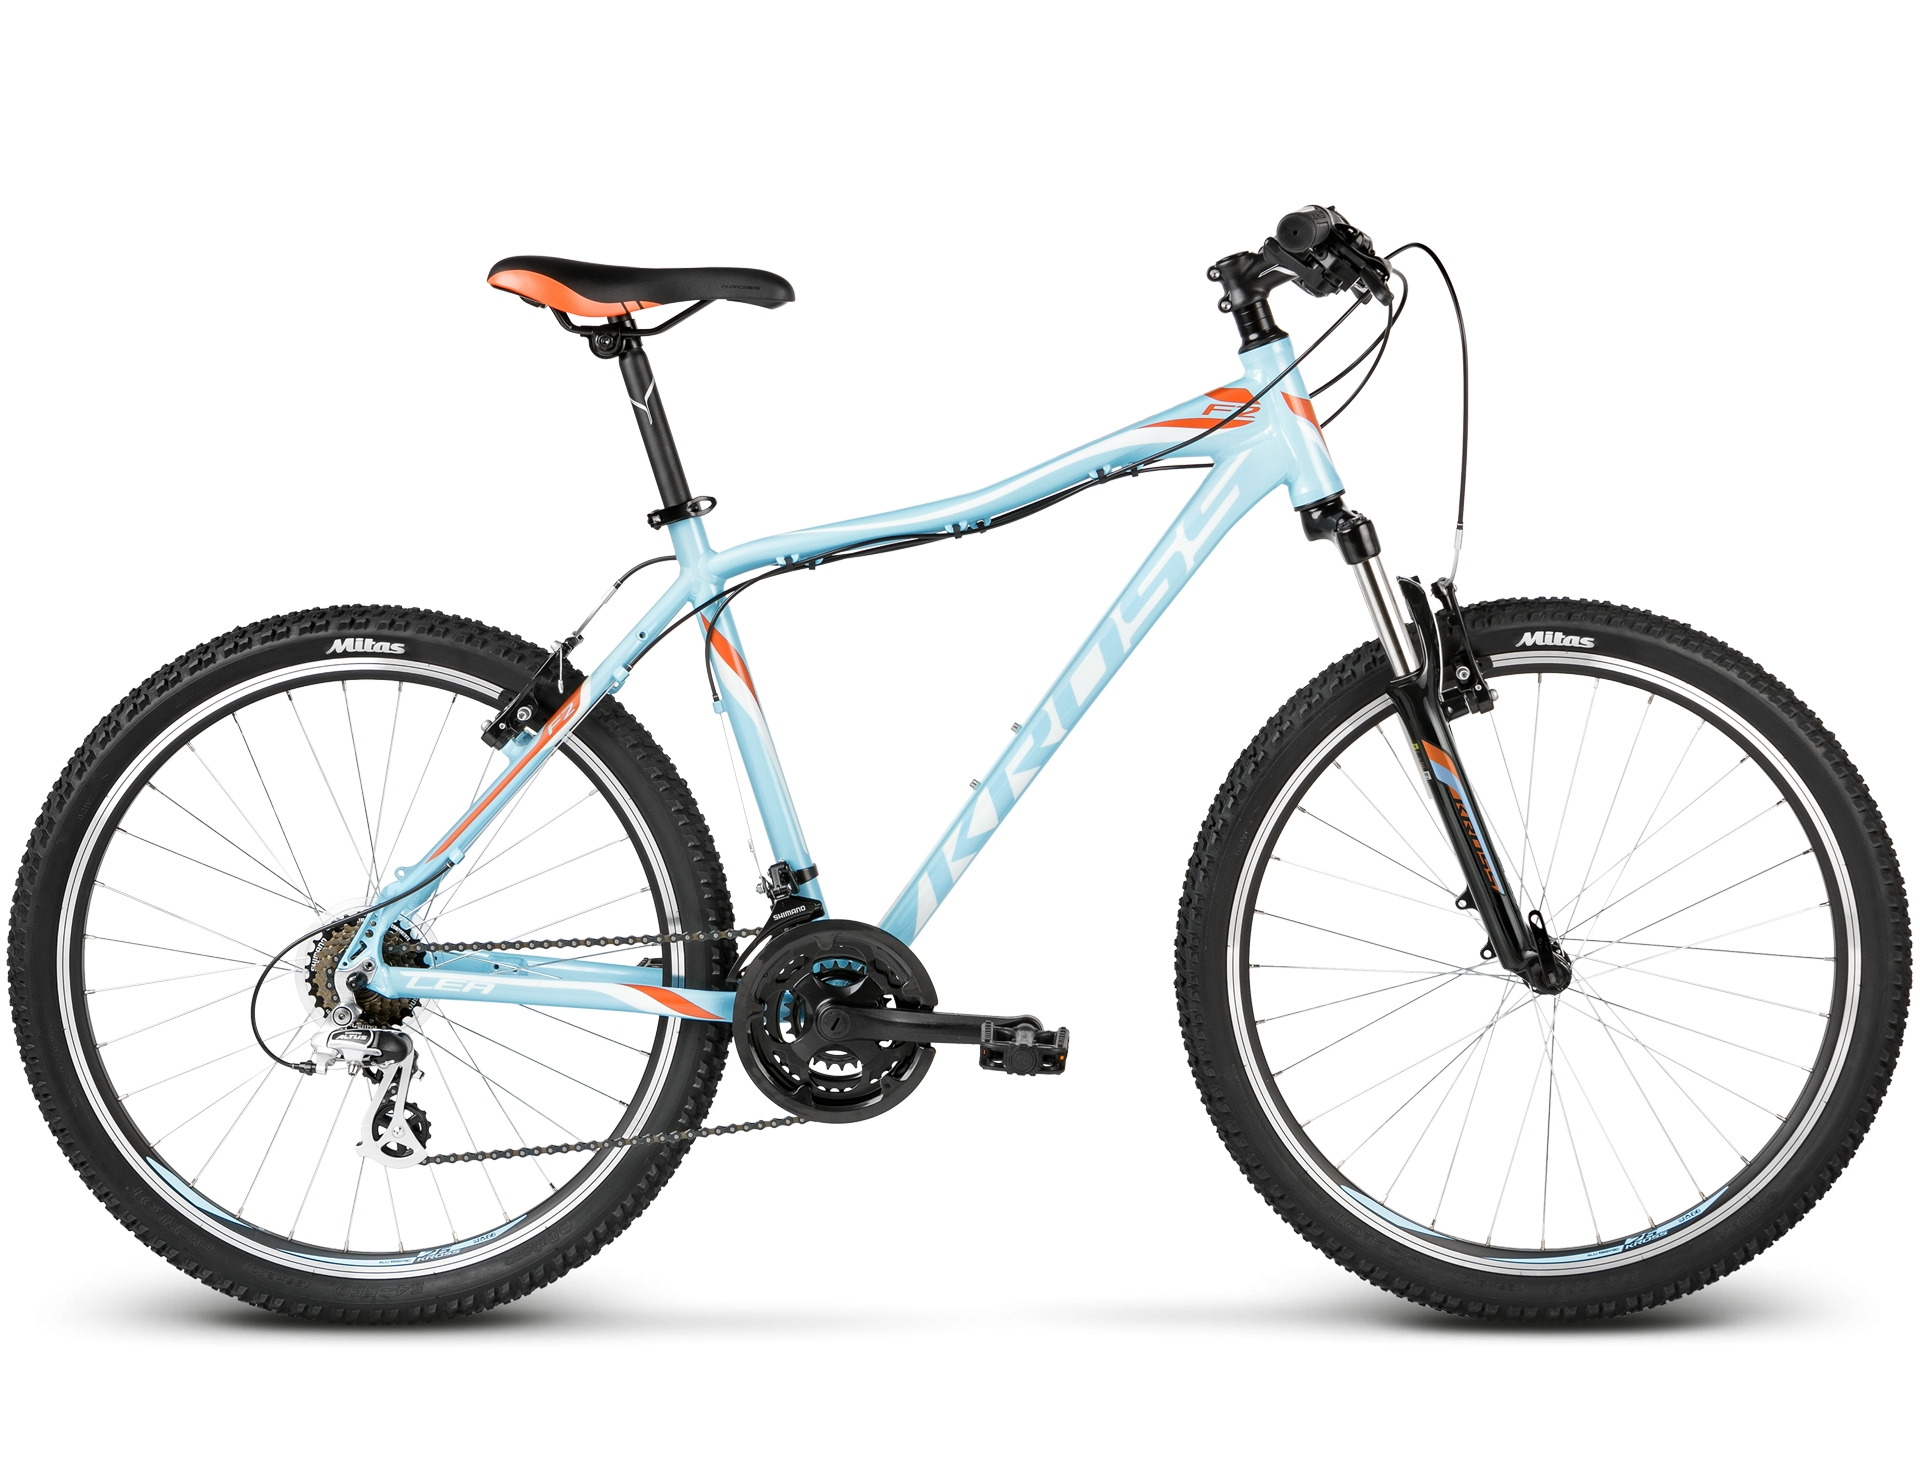 Fahrrad Xxs Bike Lea F2 Bikes Mountain Mtb Woman Kross